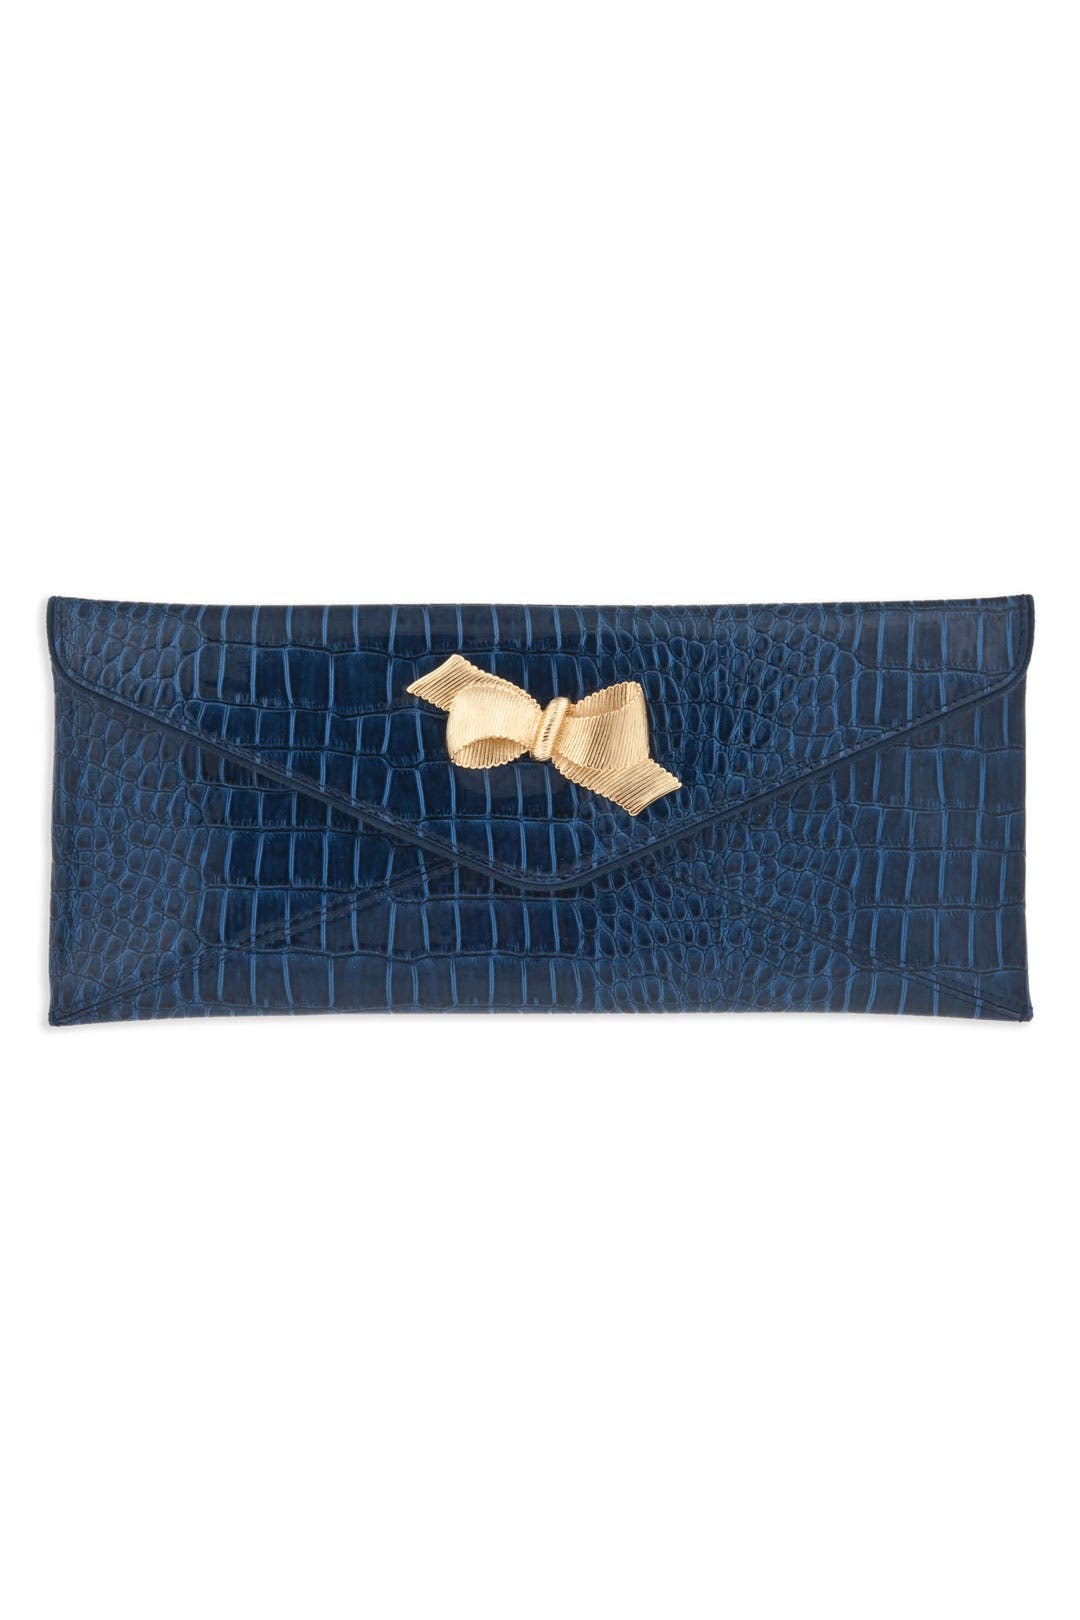 Blue Bow Tie Clutch by Lilly Pulitzer Handbags